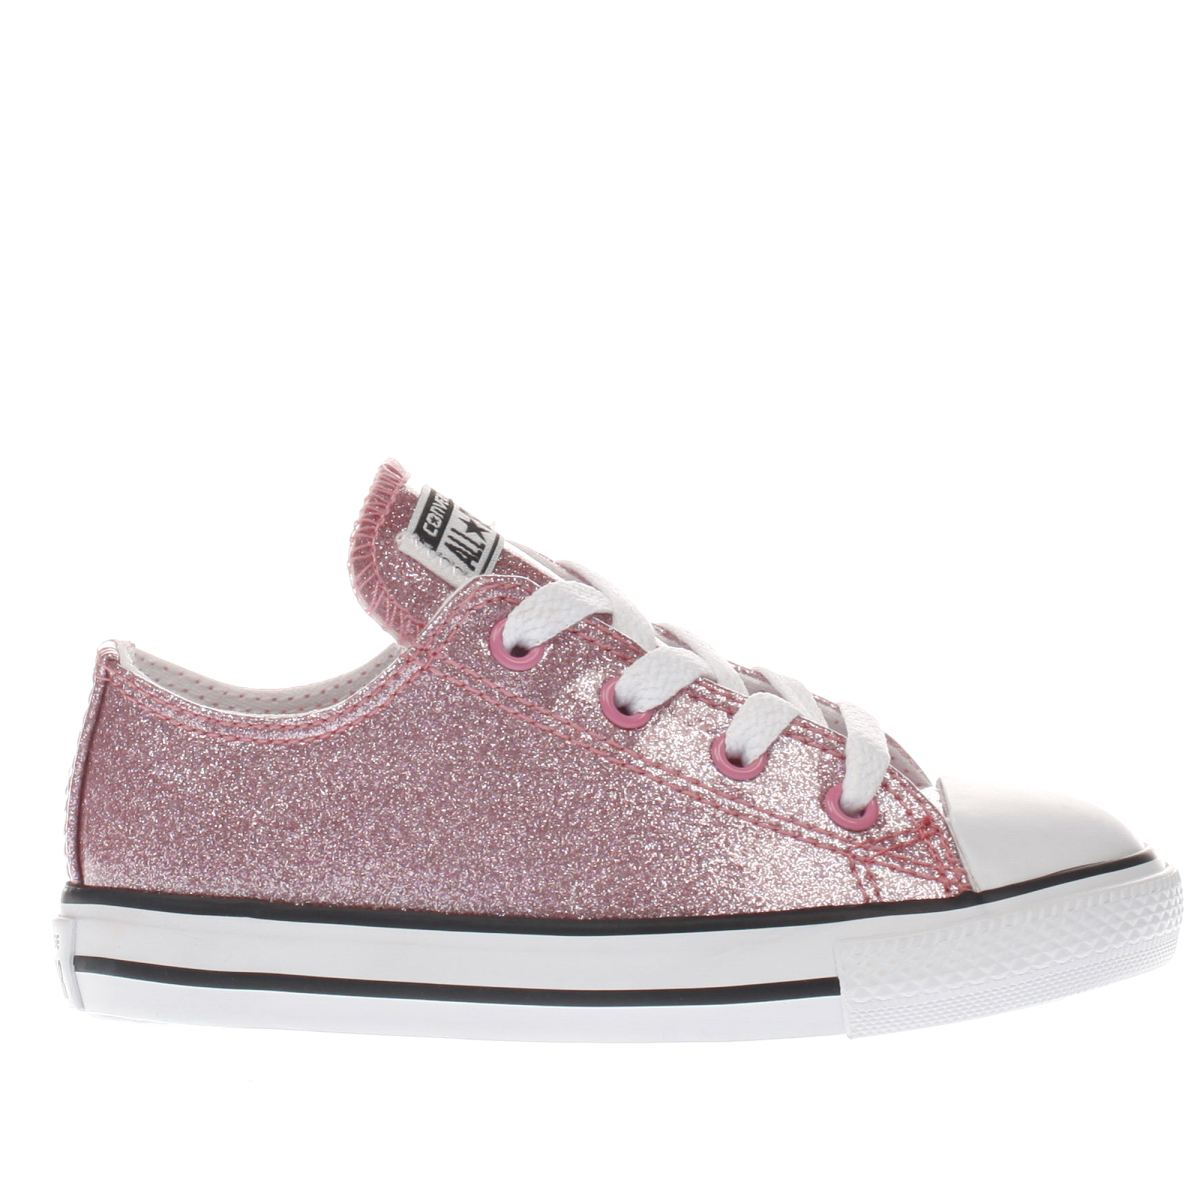 Converse To Nike Shoe Size Womens